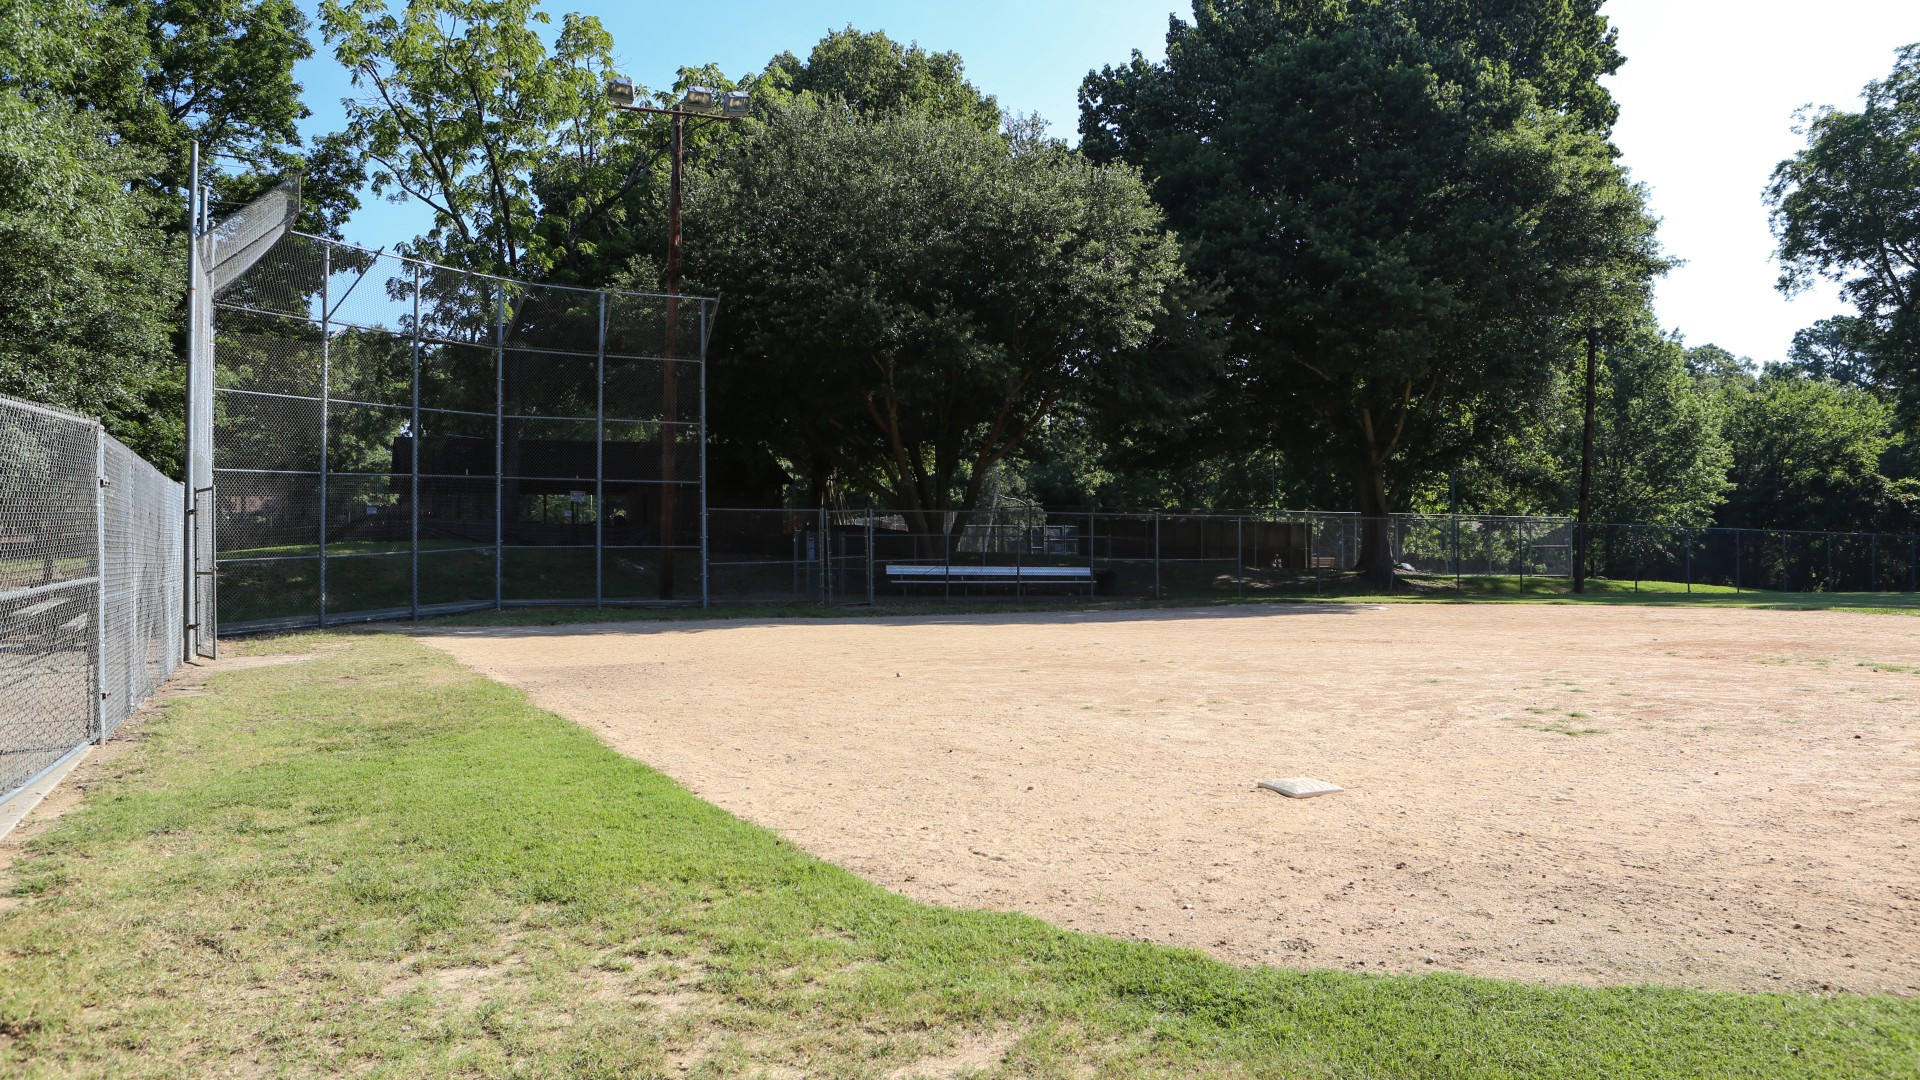 Youth baseball field